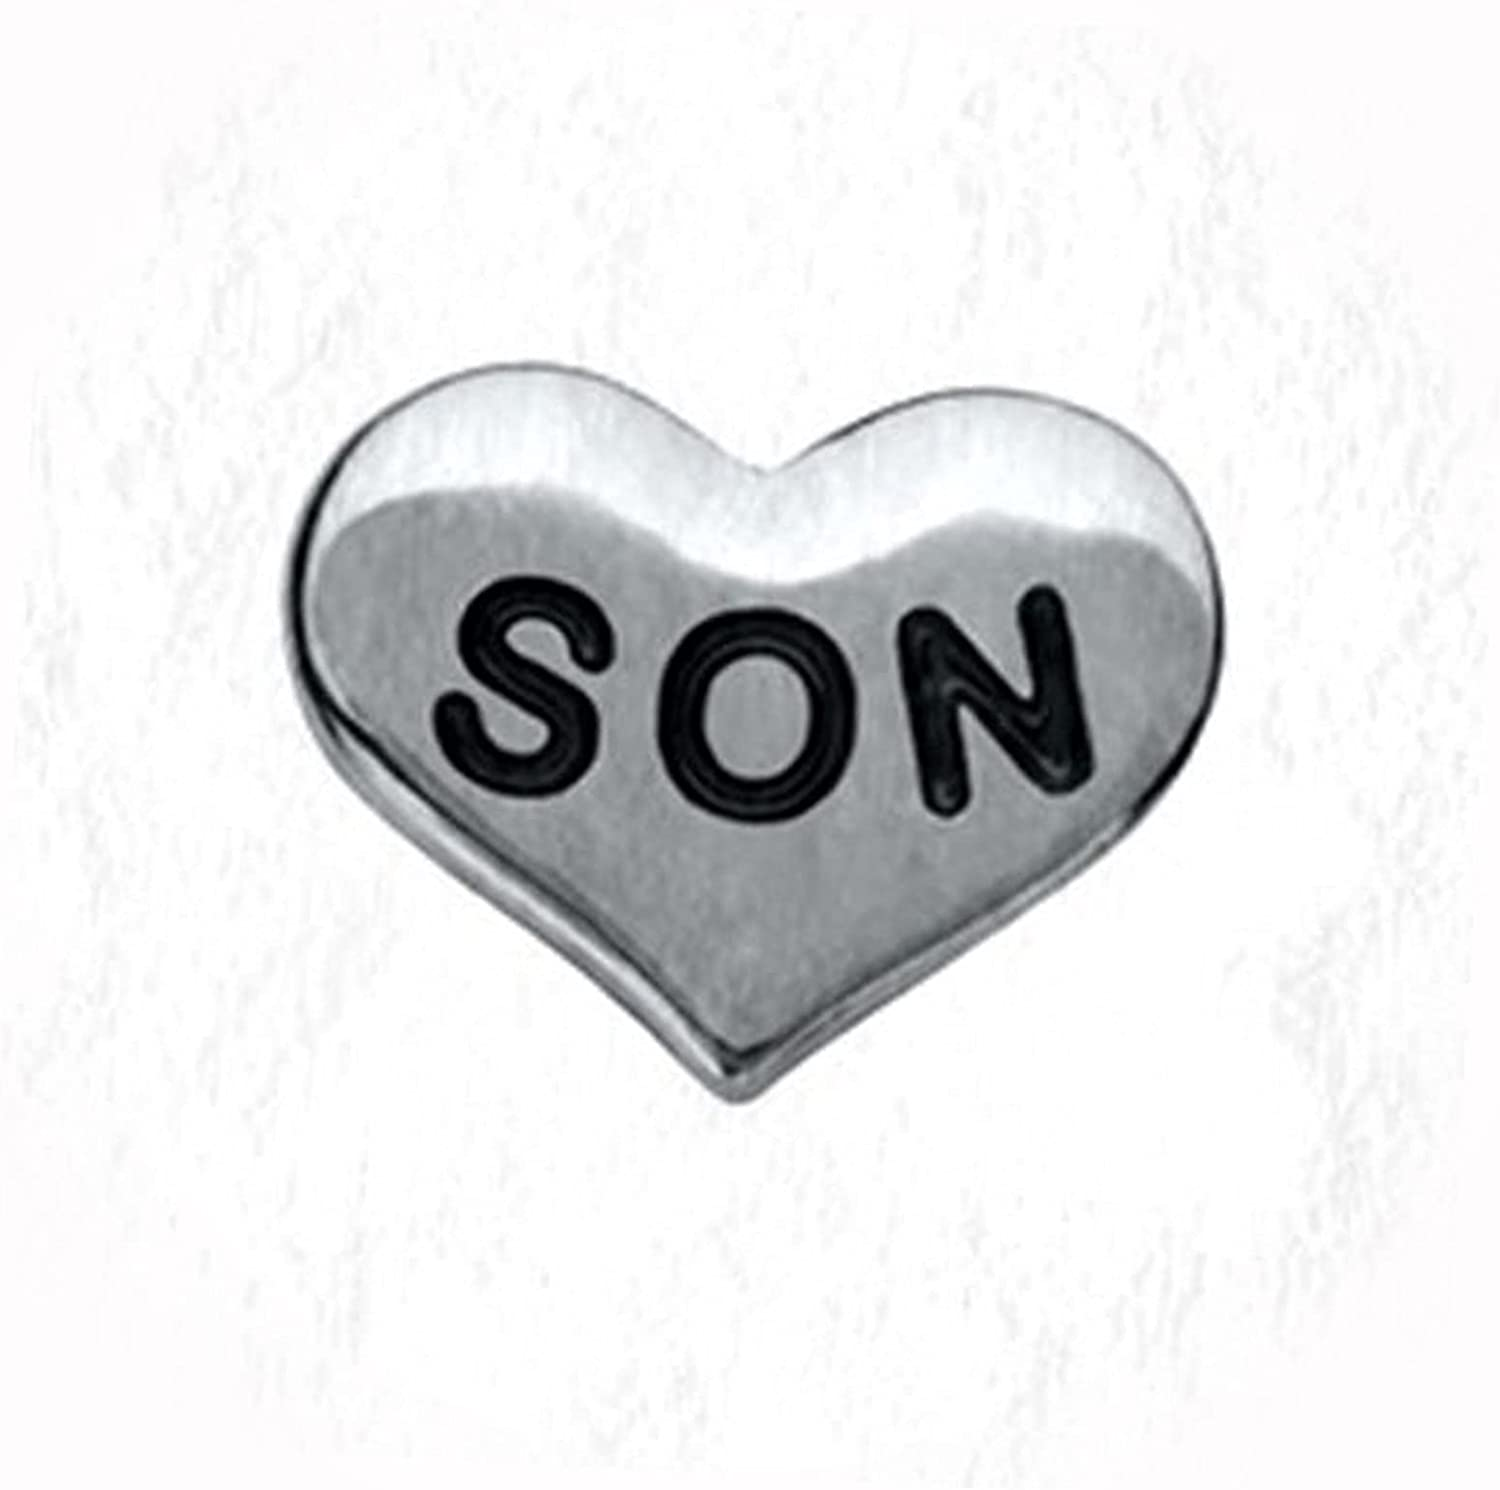 New Son Heart Silver 10mm Floating Charm Pi Weekly update Free Shipping 1 Lockets Memory for